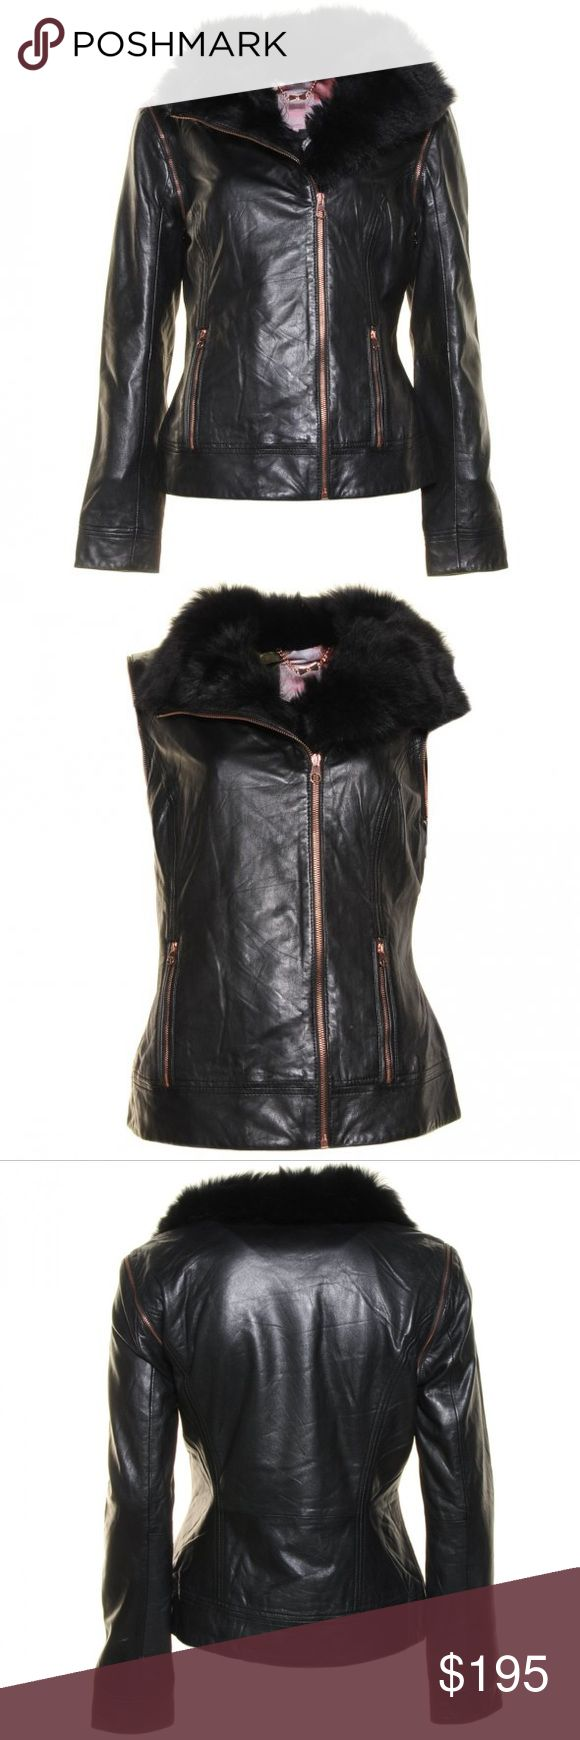 NWOT Ted Baker leather jacket Furrly detachable sleeves leather jacket by Ted Baker in black. The jacket is fitted with copper zippers, high fur collar, two vertical zipped pockets, a full zip closure and detachable sleeves. Ted Baker size 2 which translates to US size 6. Ted Baker Jackets & Coats